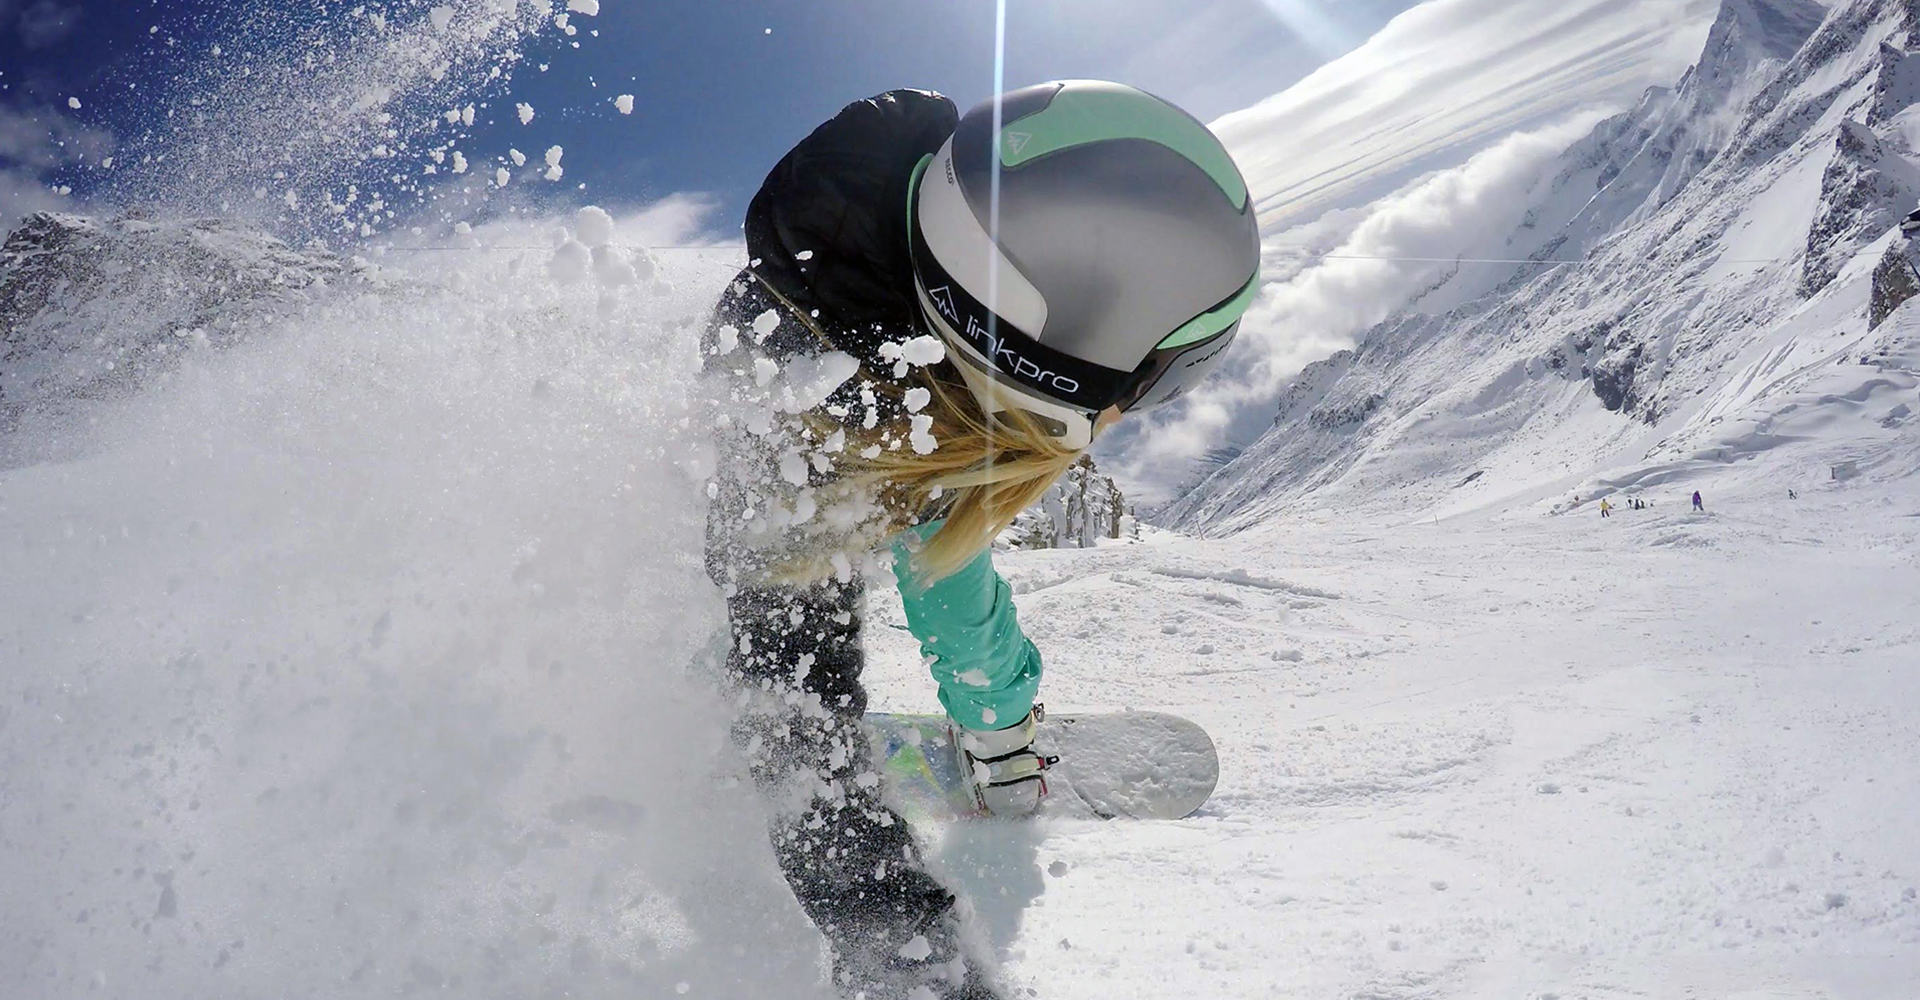 Link Pro - Curventa - In situ - snowboard - helmet - communication - headphones - silver helmet  - action shot - female snowboarder - carving - mountain